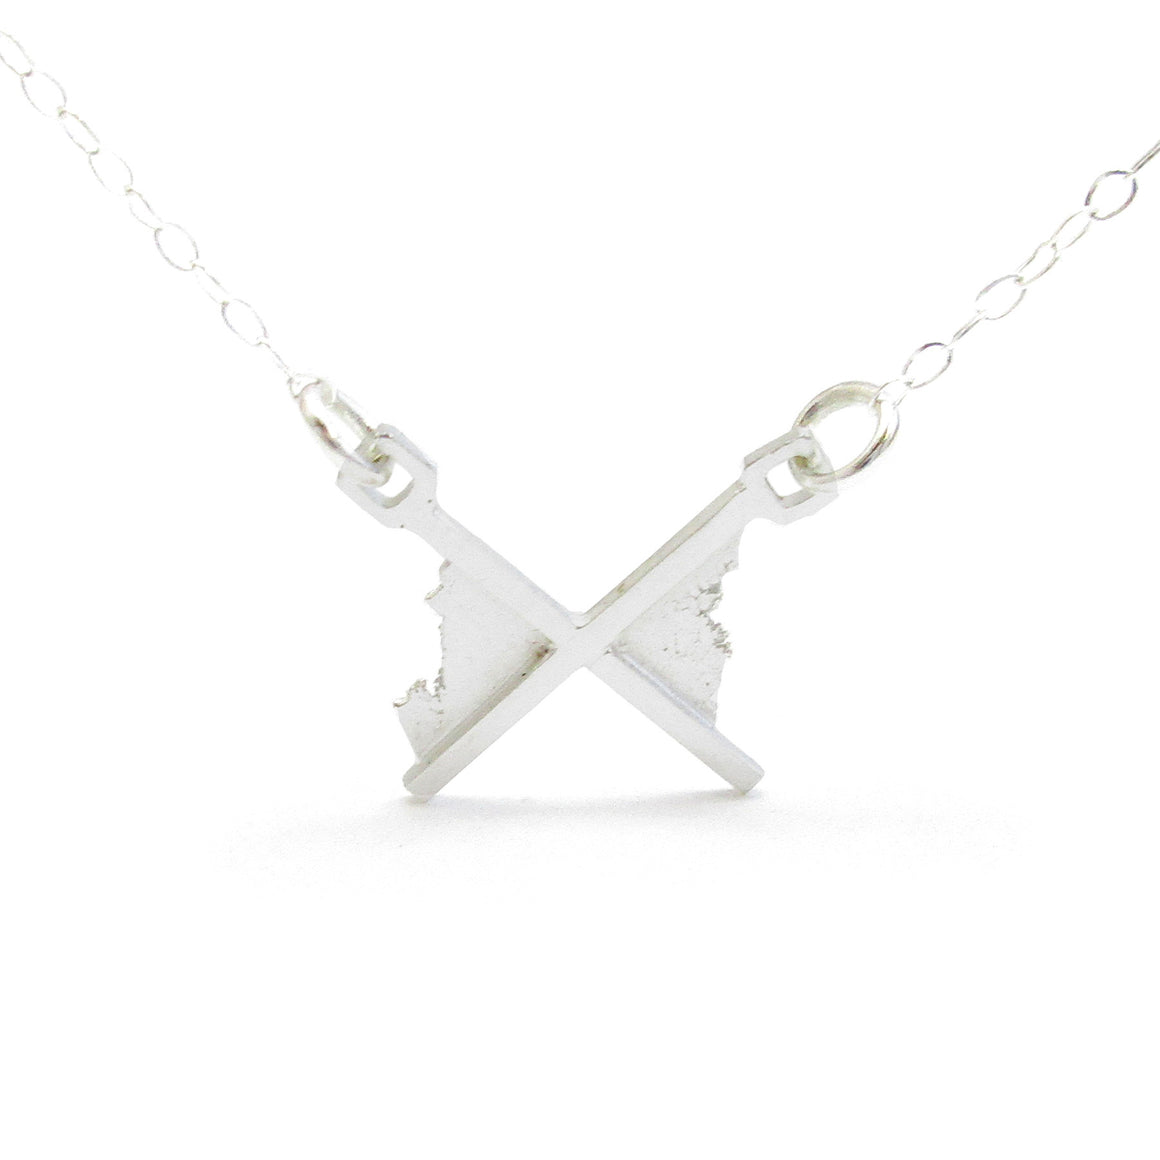 The X Necklace